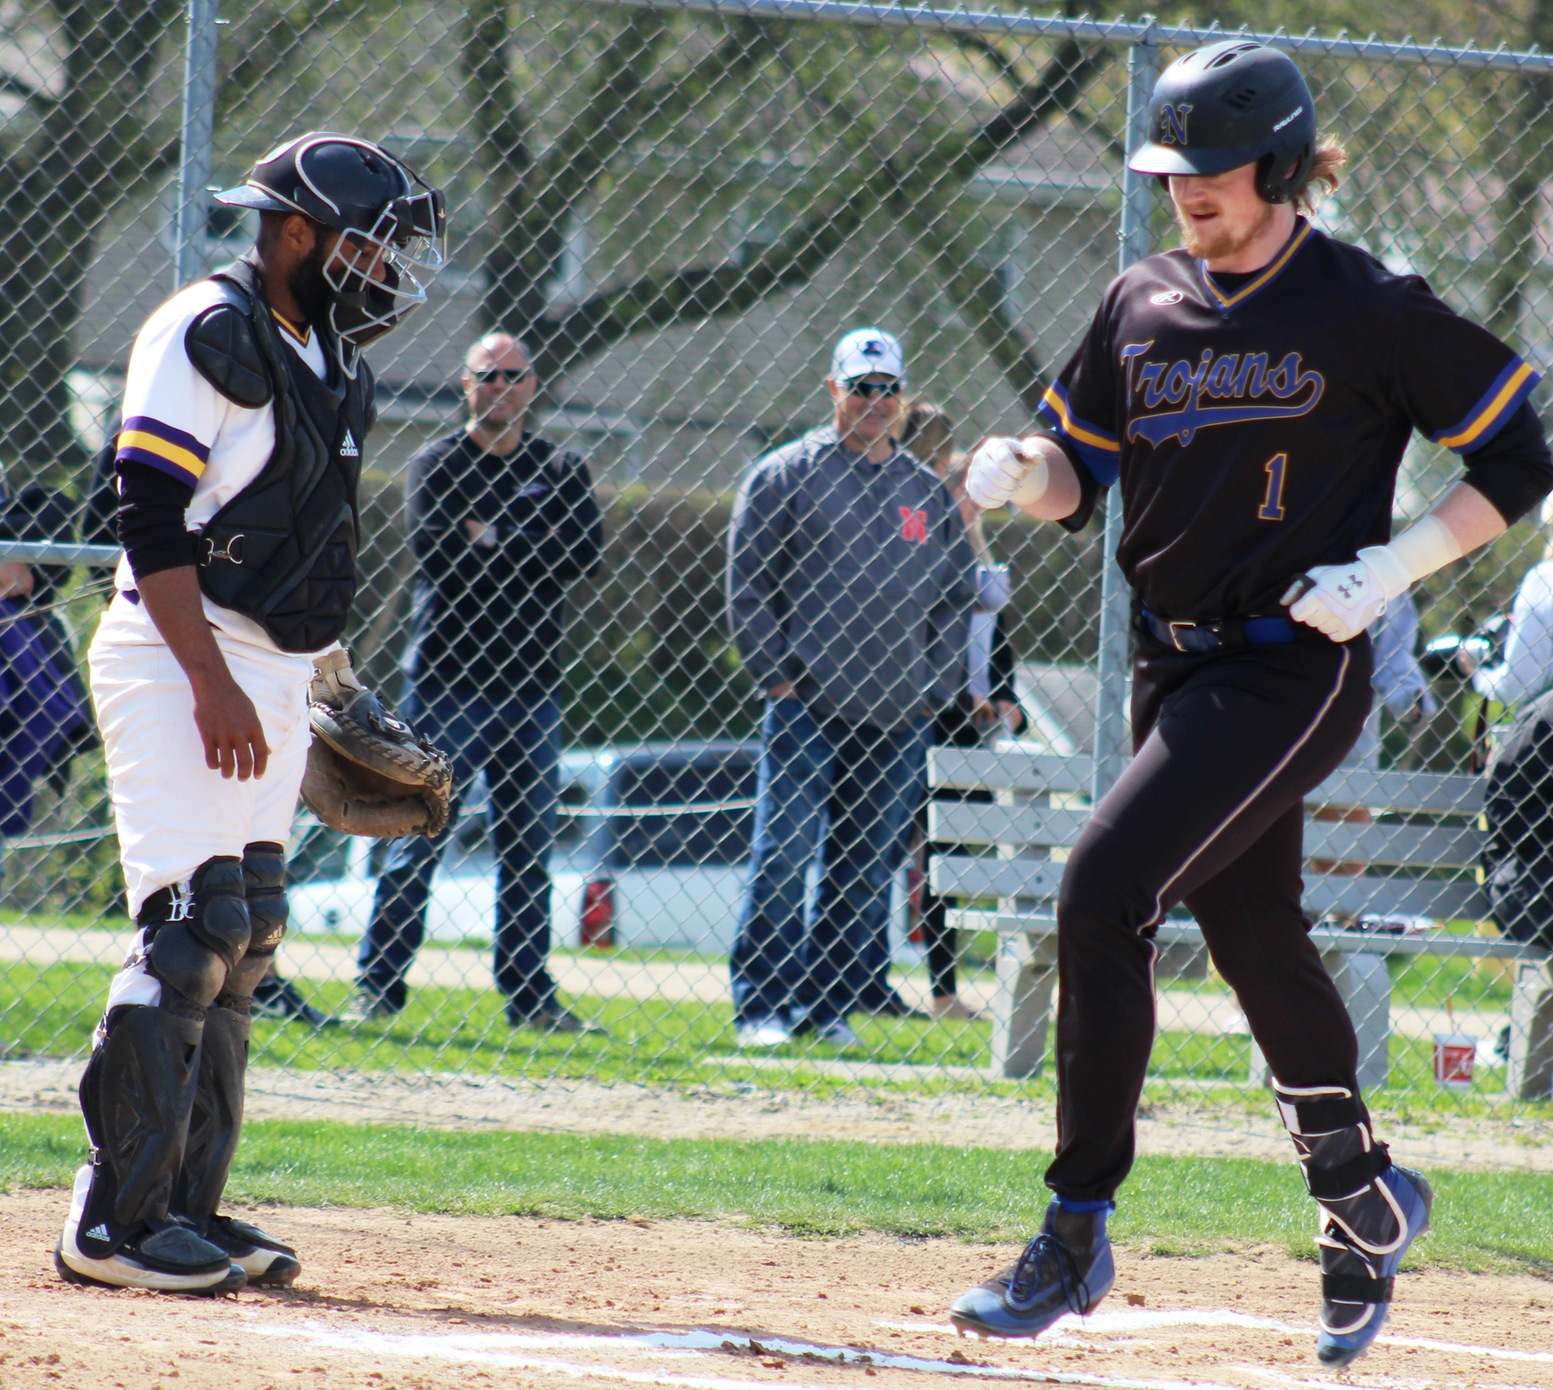 Fox Leum crosses home plate after hitting a home run against Ellsworth last Friday in Iowa Falls.